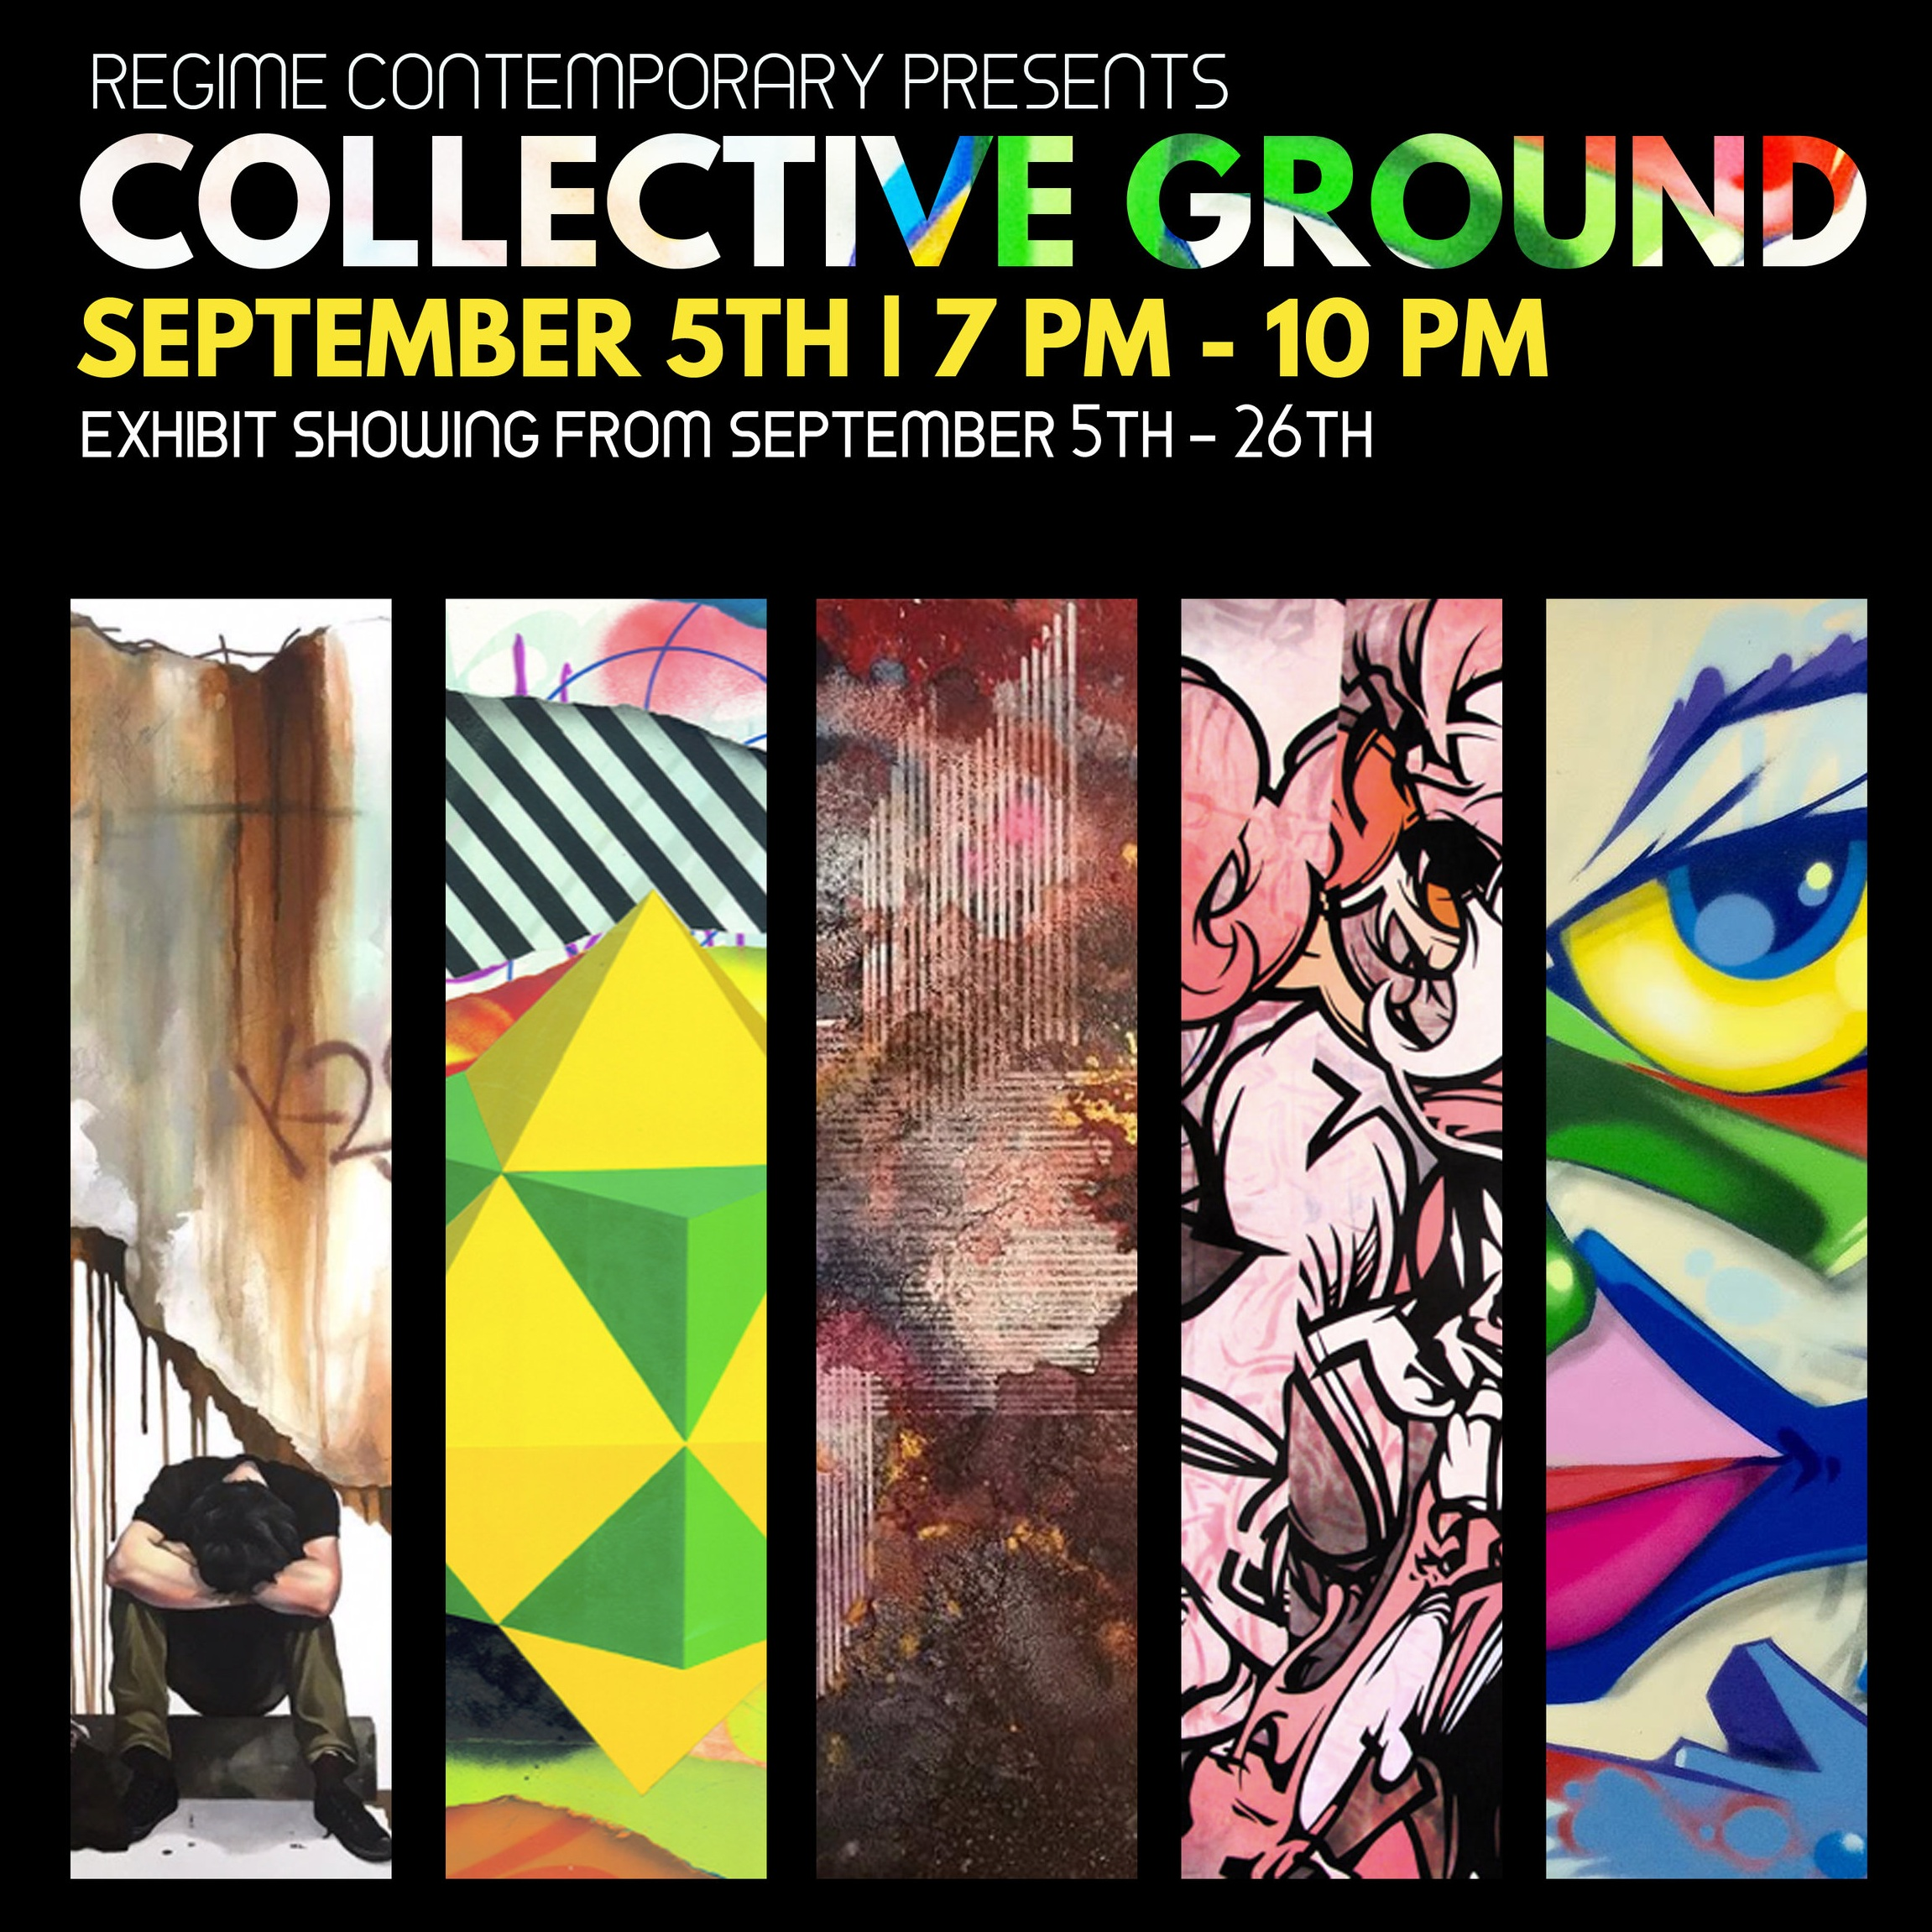 COLLECTIVE GROUND - Opening: September 5, 2019 - 7:00pm - 10:00pmSeptember 5 - 26This selection of artwork highlights each artist's penchant for style, color and pure reverence for their craft. With everyone gathered at a single zenith, we are proud to bring you a showing of impeccable taste at the Regime Contemporary Gallery.RSVP HERE (FREE)